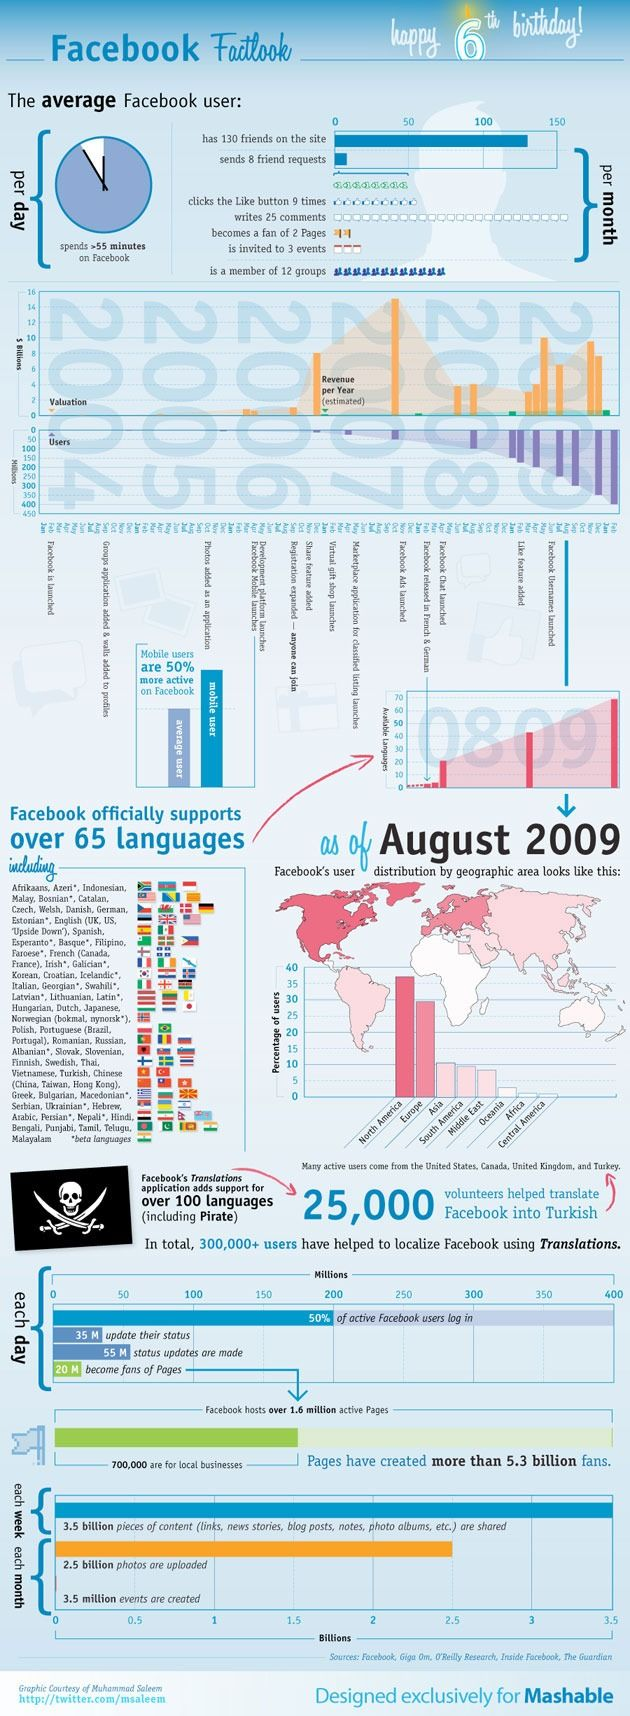 Visualizing 6 Years of Facebook #facebook #infographic via Mashable